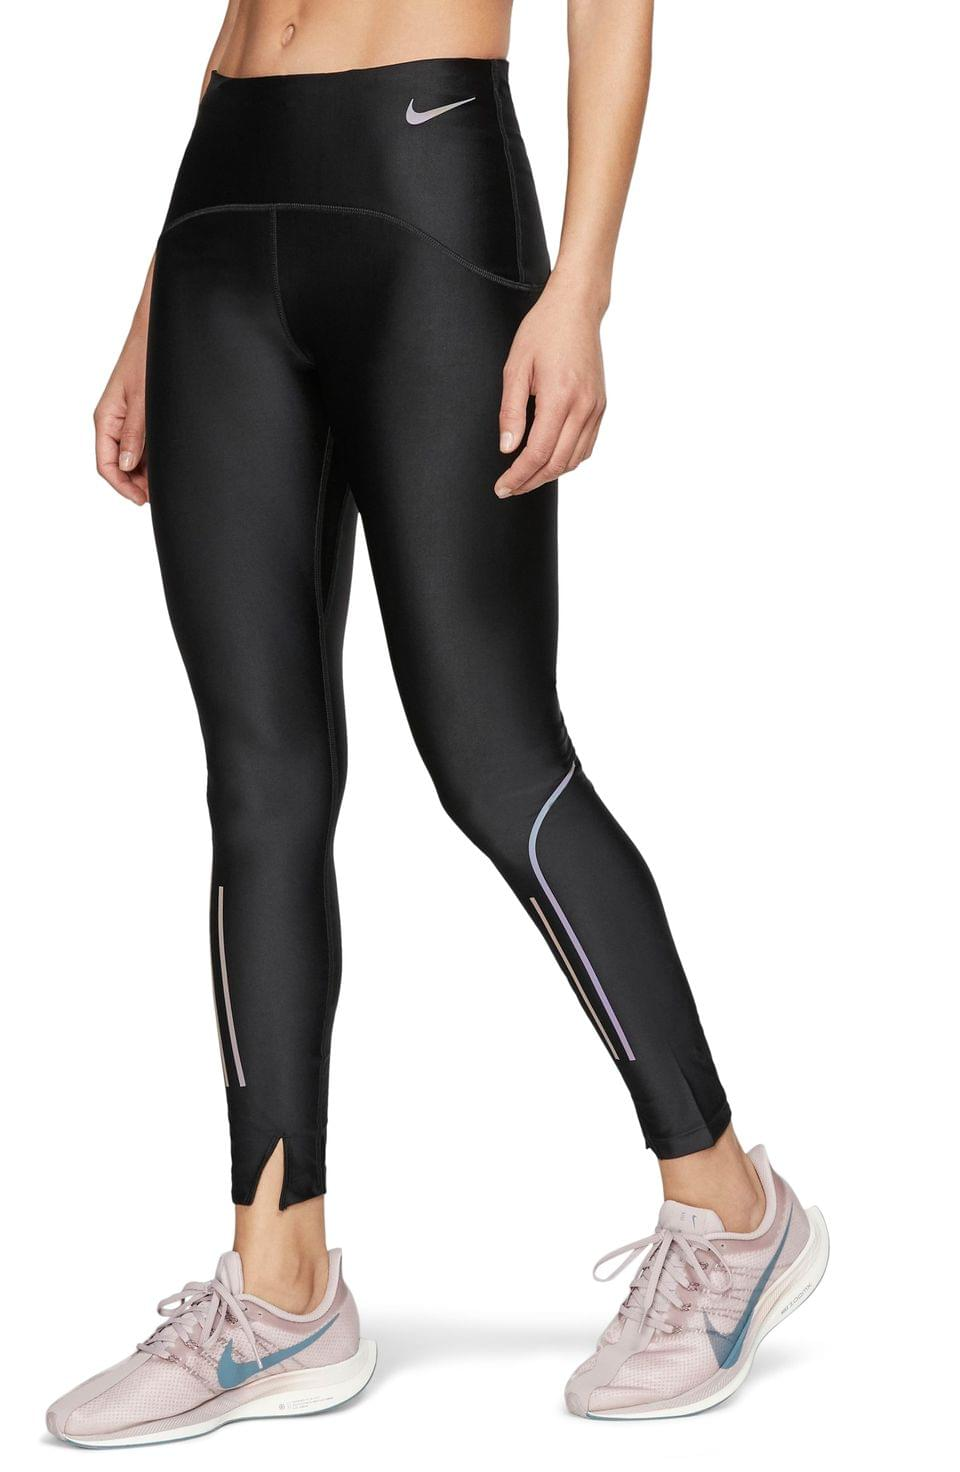 Women's Nike Dri-FIT 7/8 Running Tights